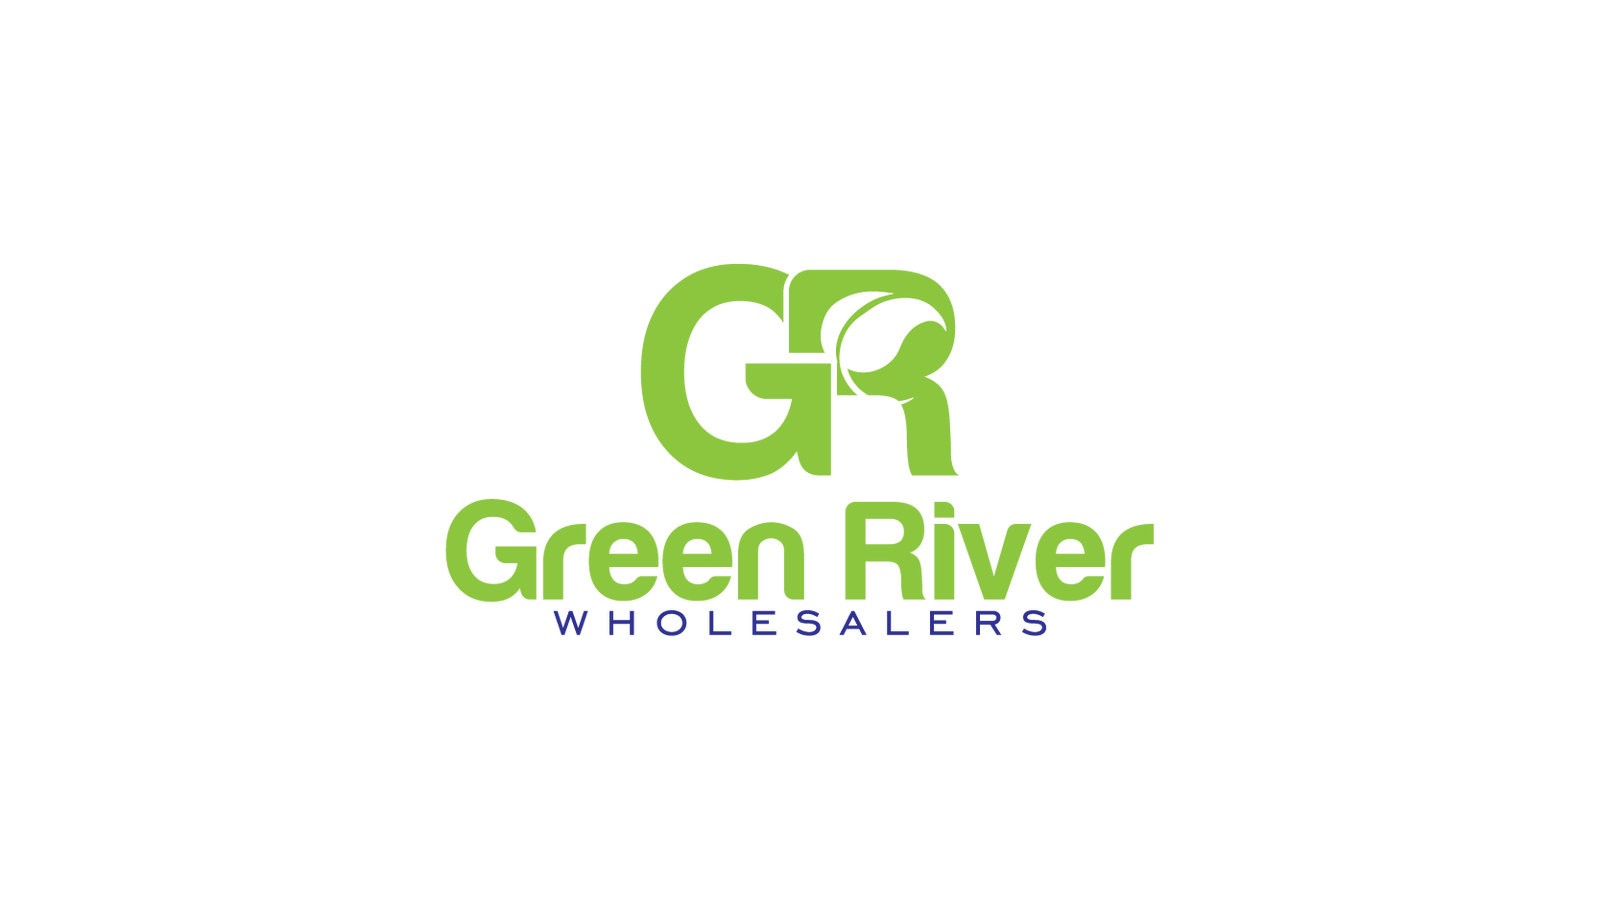 Green River Wholesalers